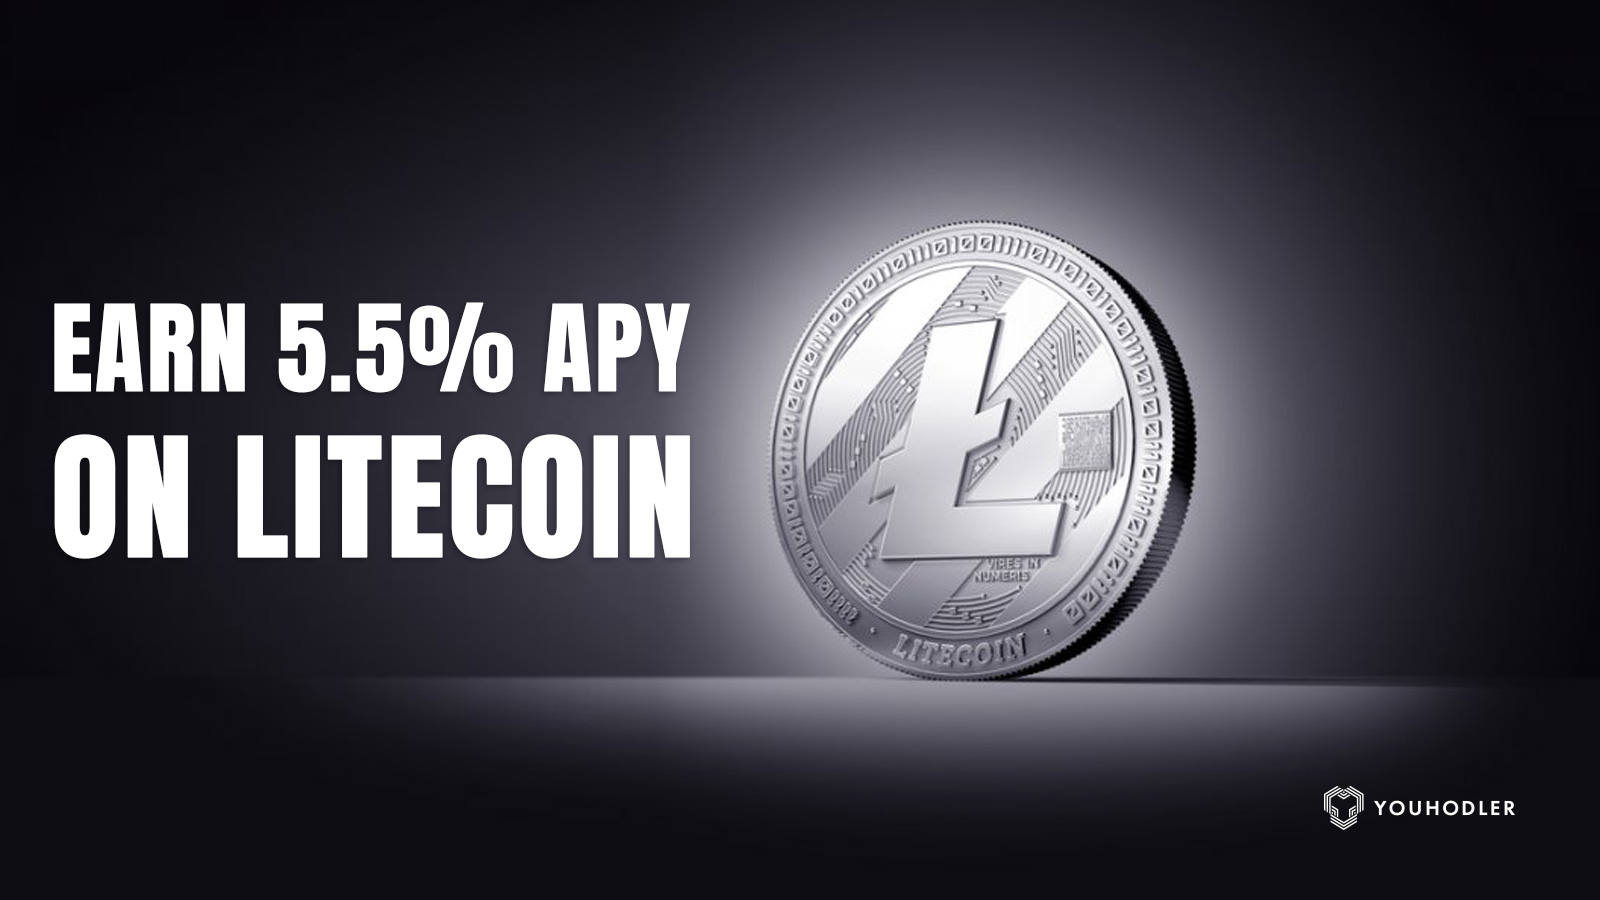 litecoin savings account is here